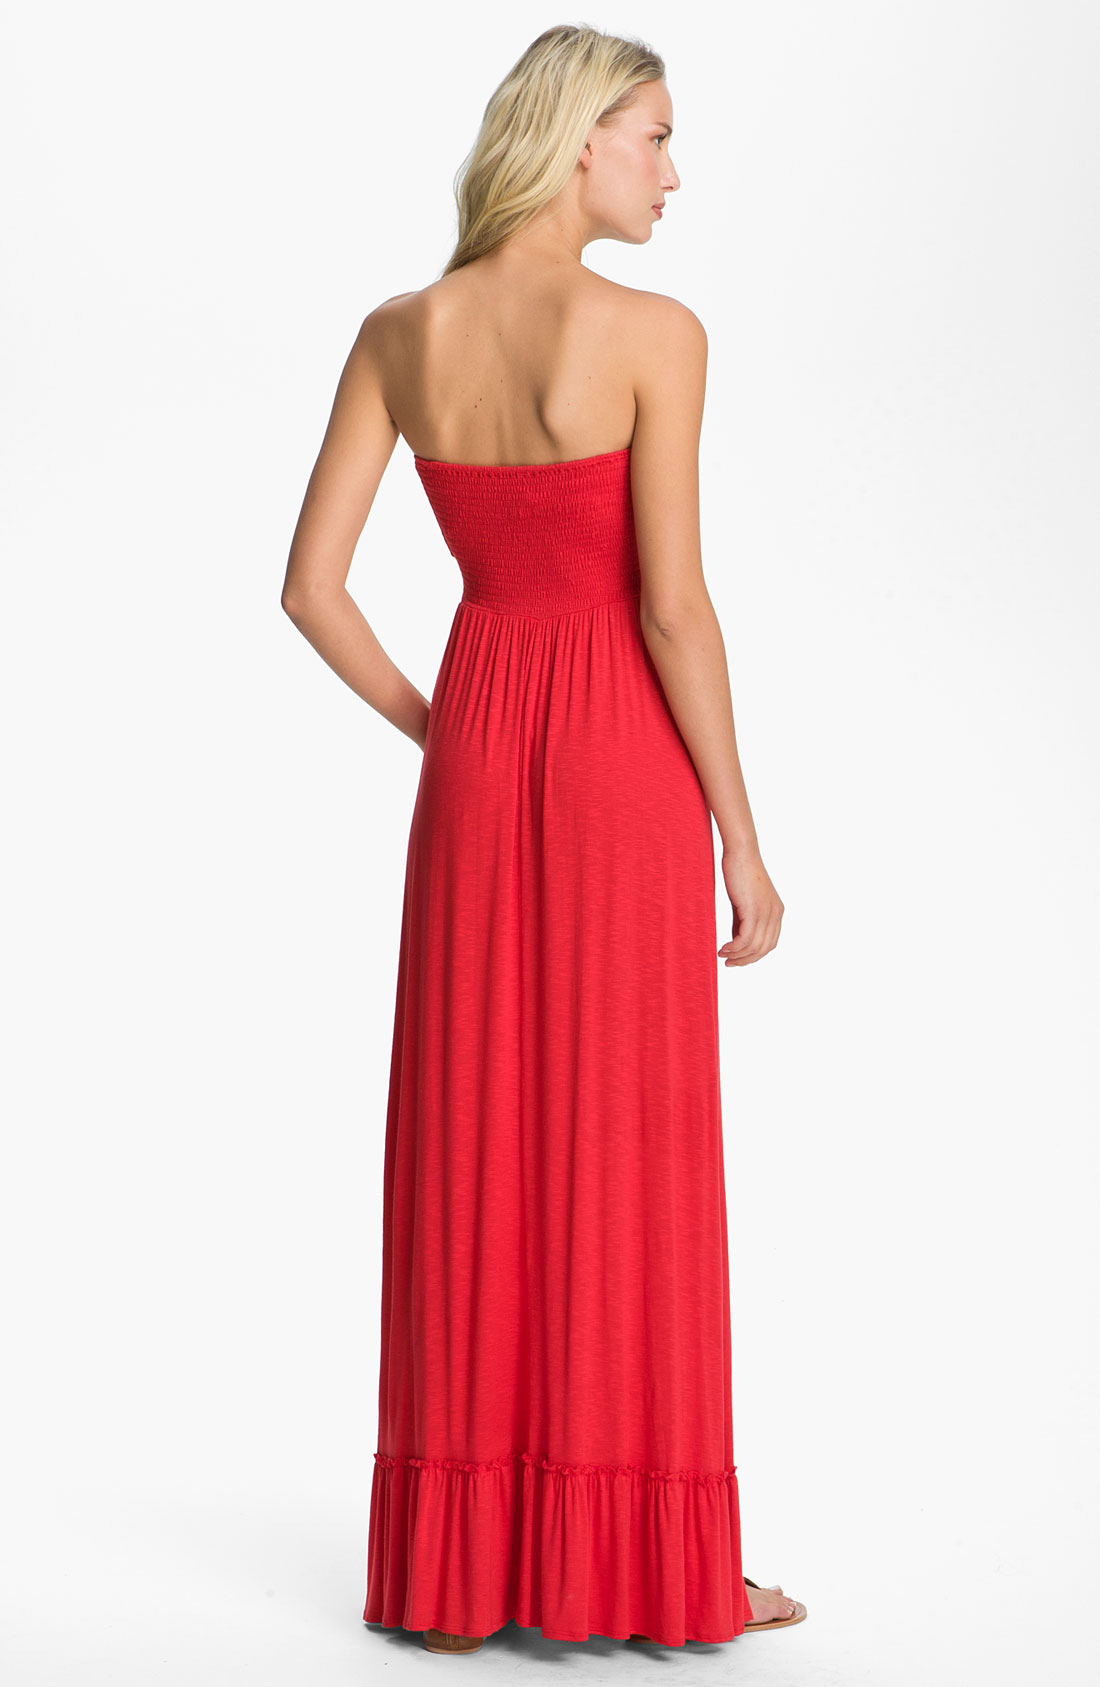 Lyst - Bellatrix Strapless Maxi Dress in Red